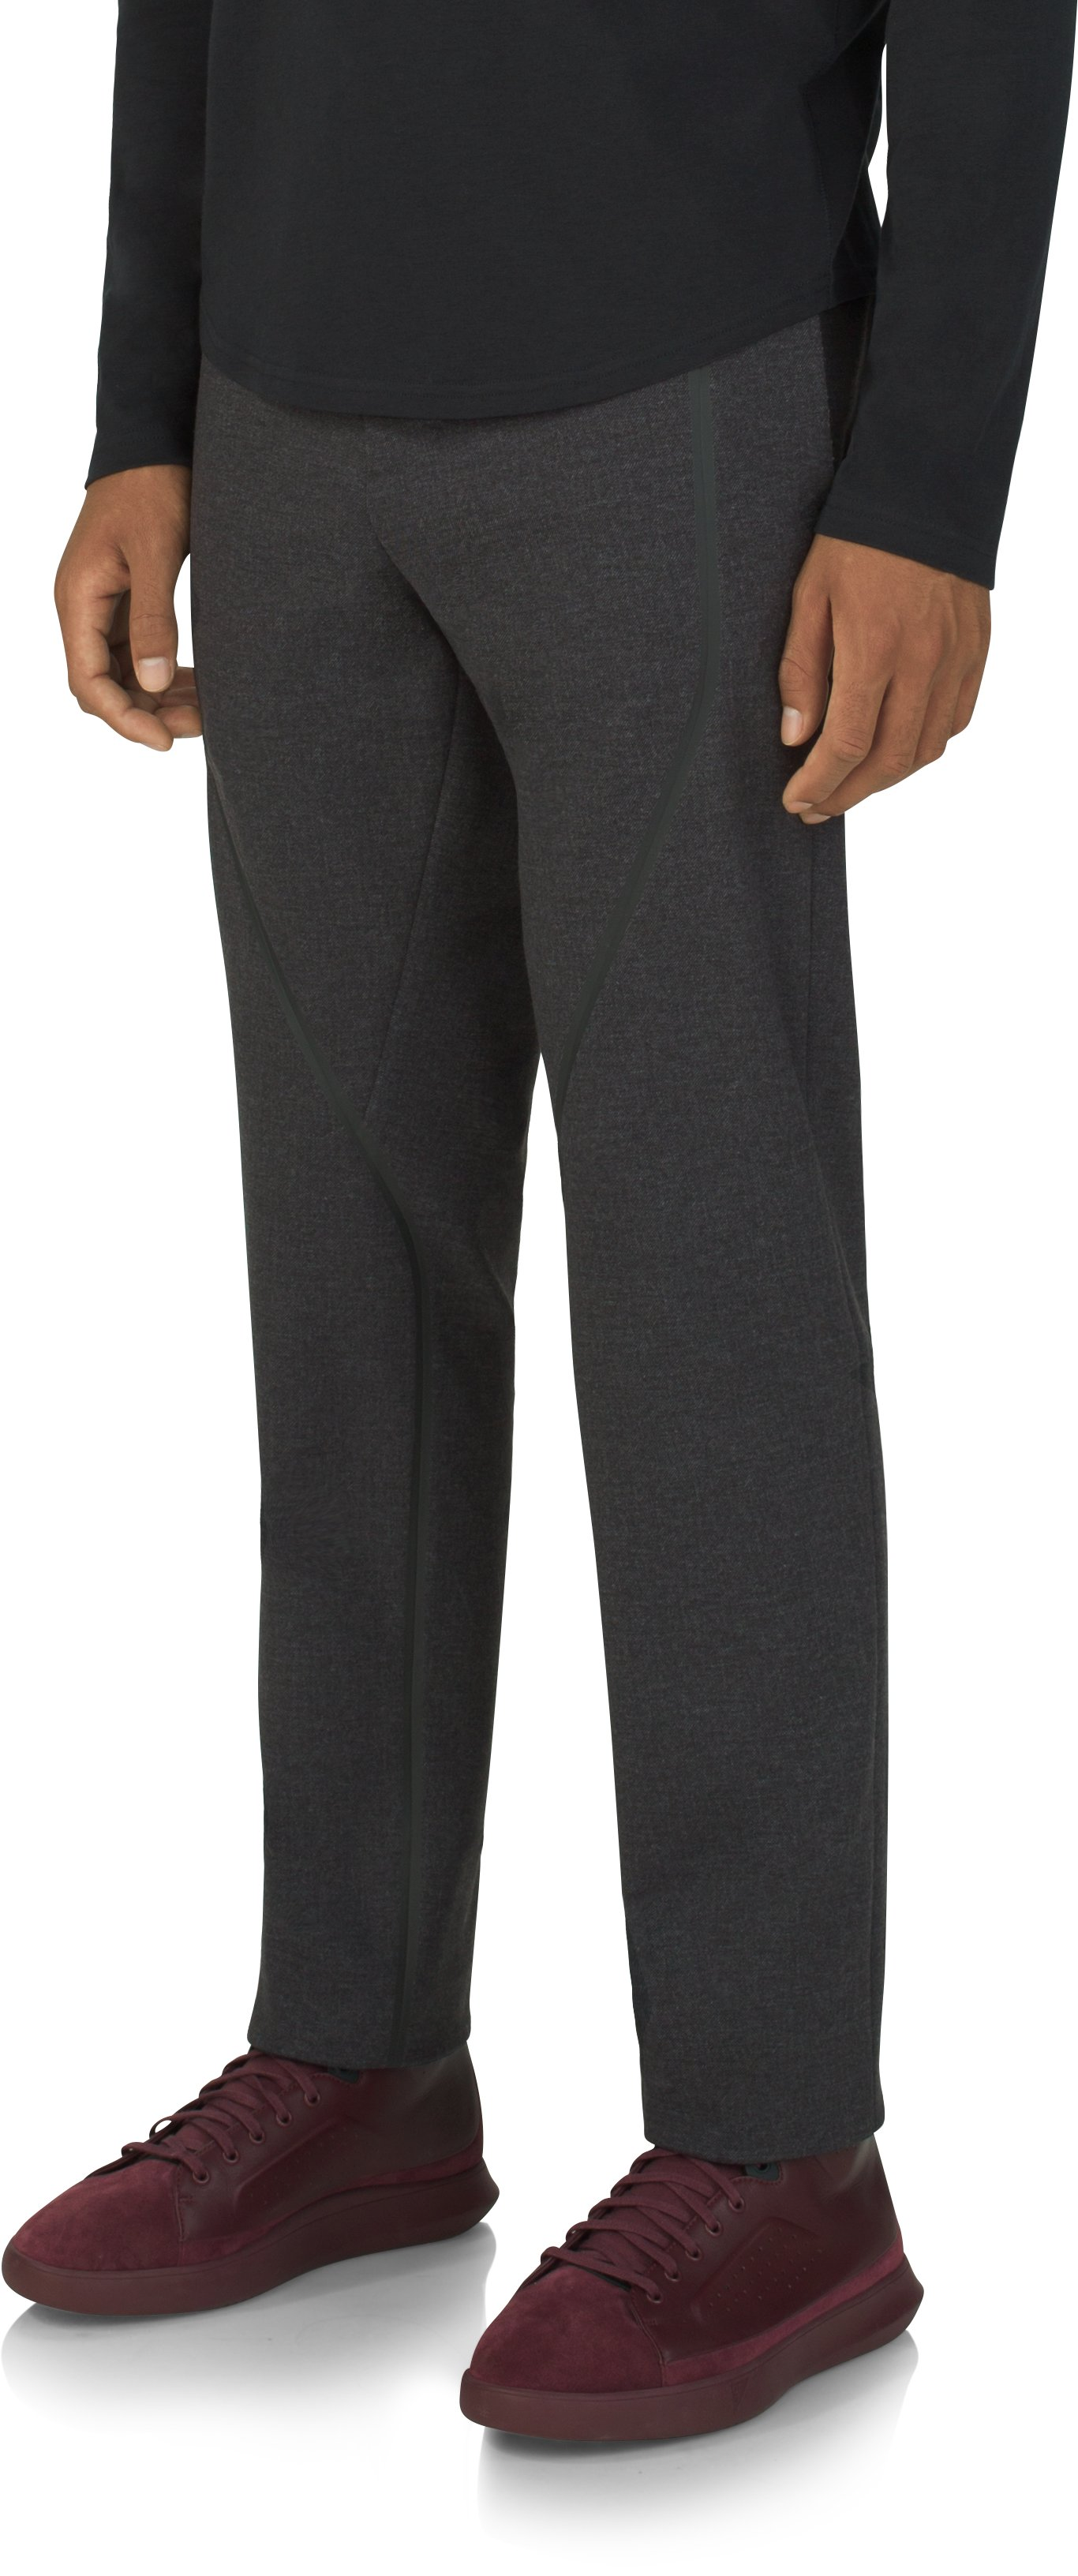 Men's UAS Rugby Suit Pants, DARK HEATHER GRAY